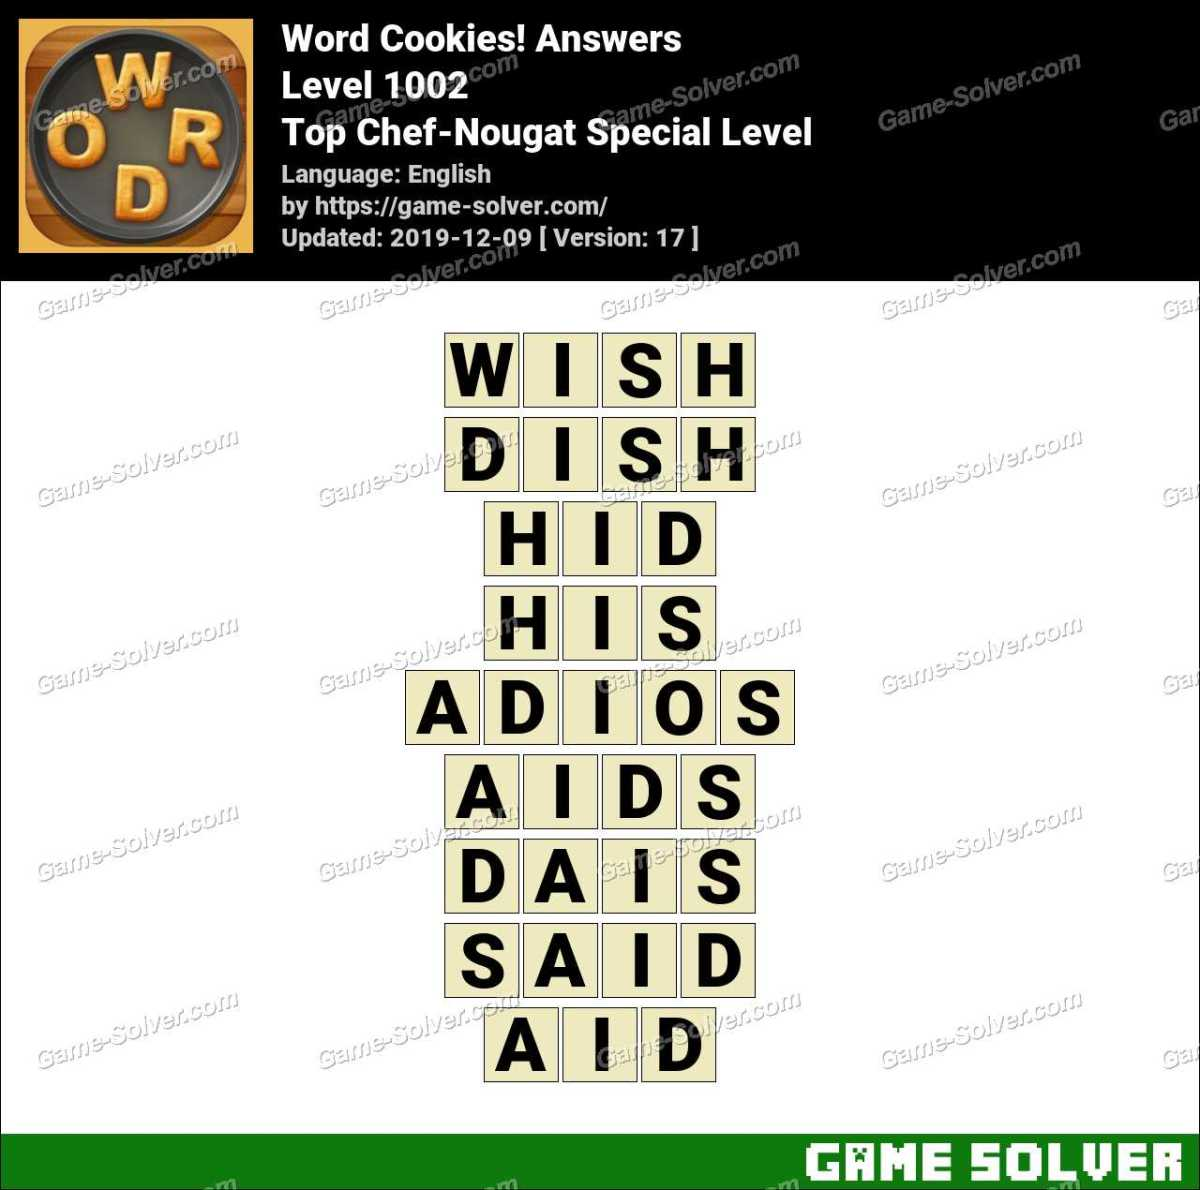 Word Cookies Top Chef-Nougat Special Level Answers